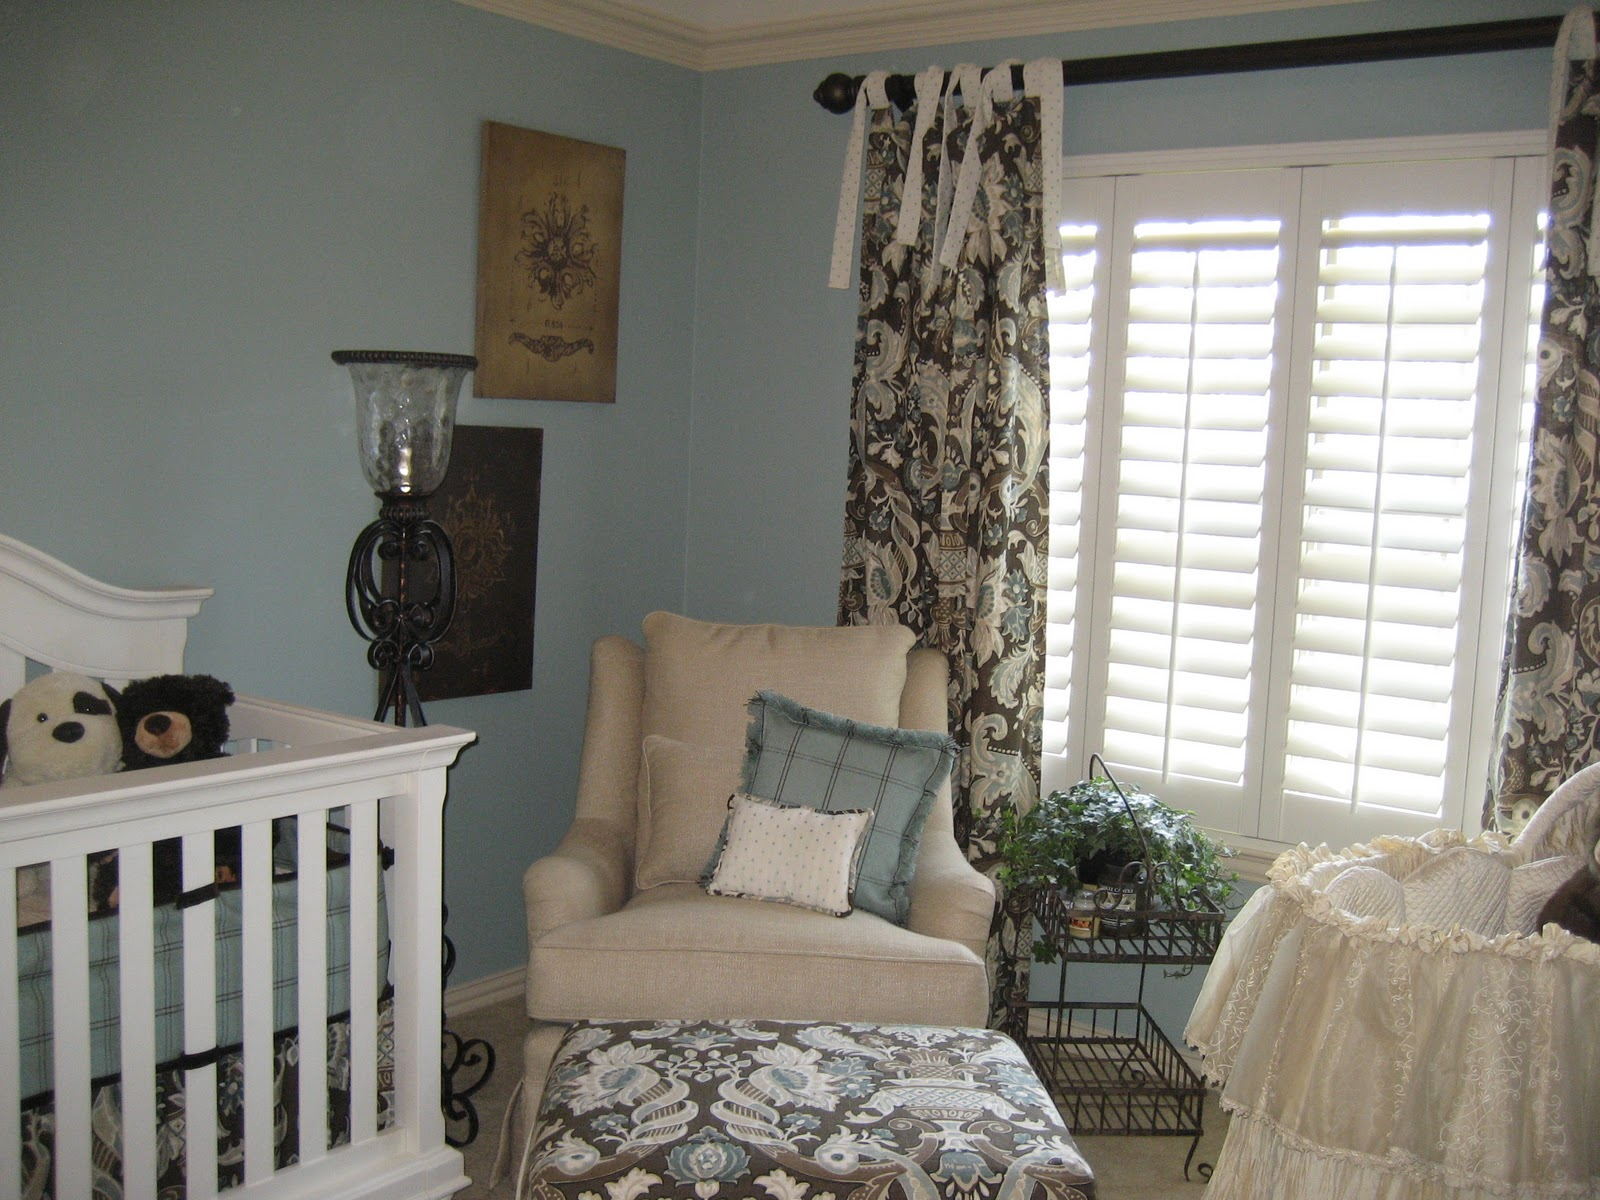 Cute Room For Baby